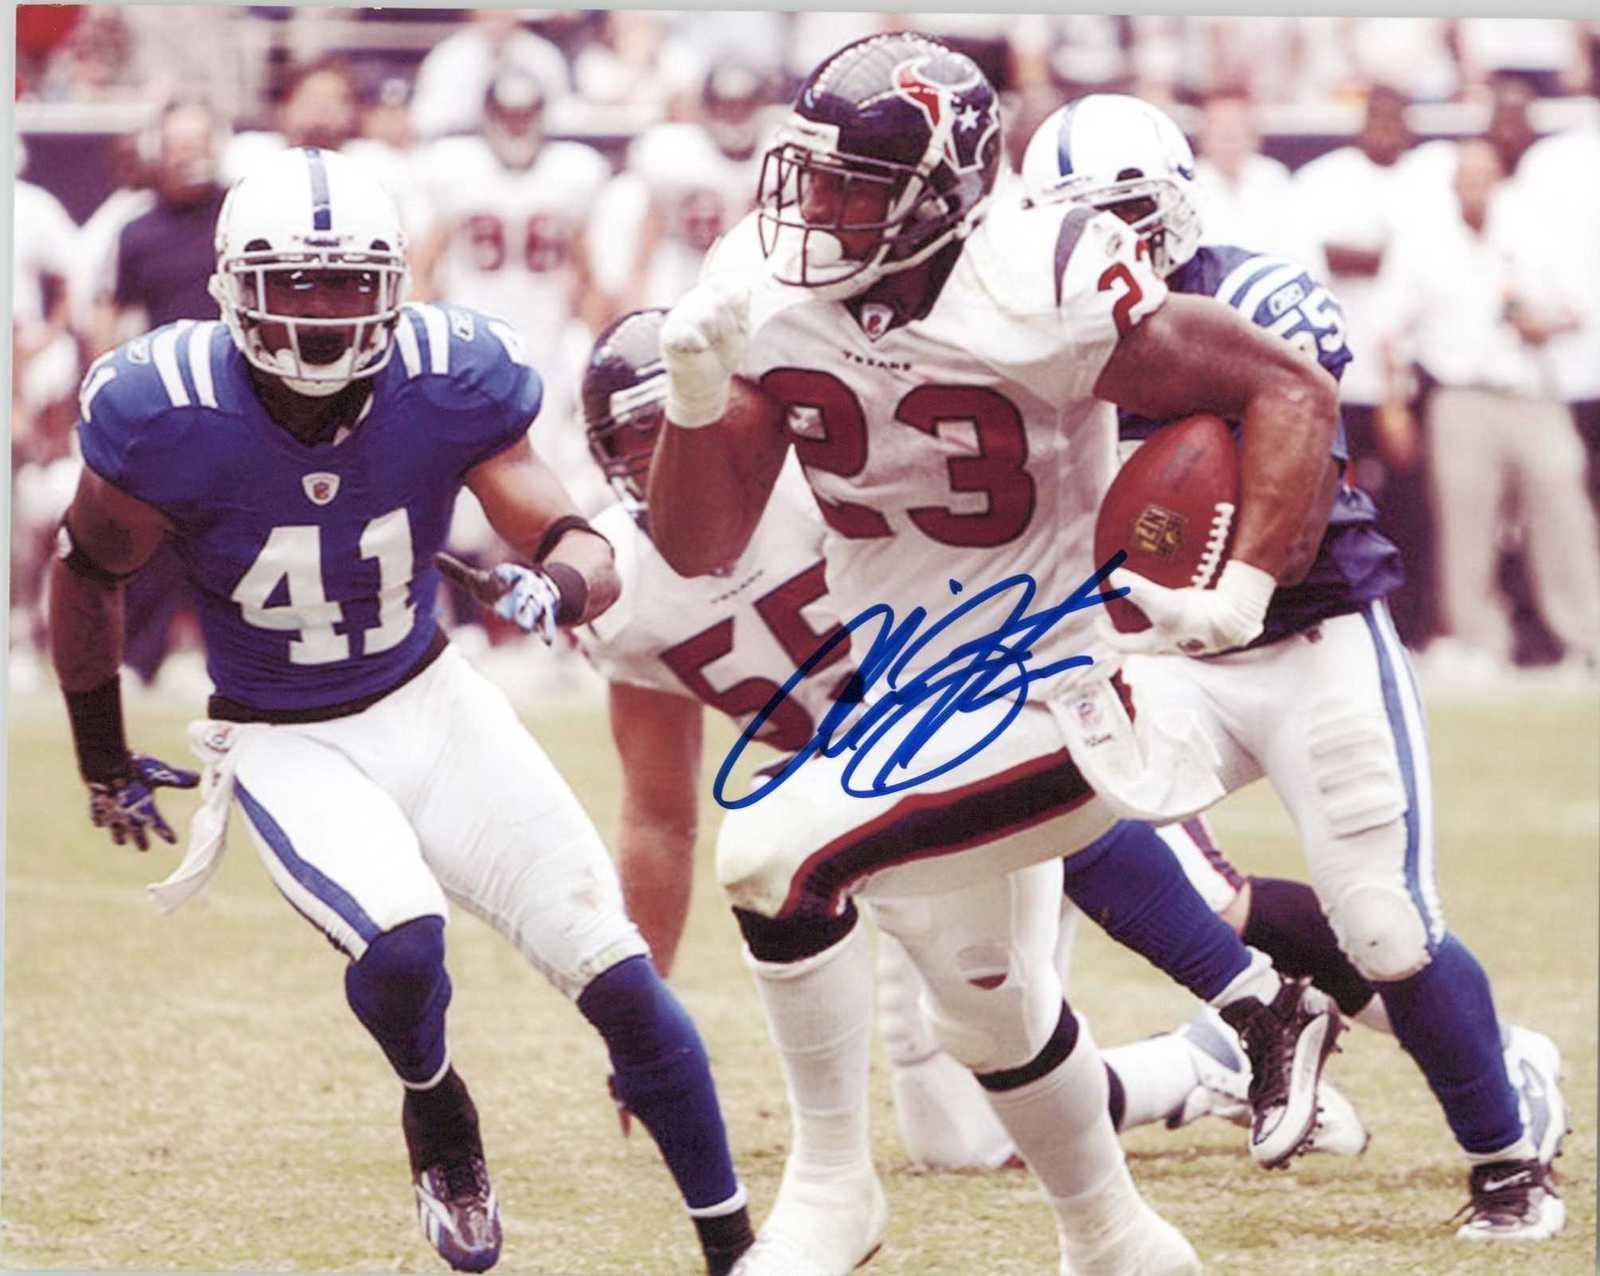 Primary image for Arian Foster Signed Autographed Glossy 8x10 Photo - Houston Texans